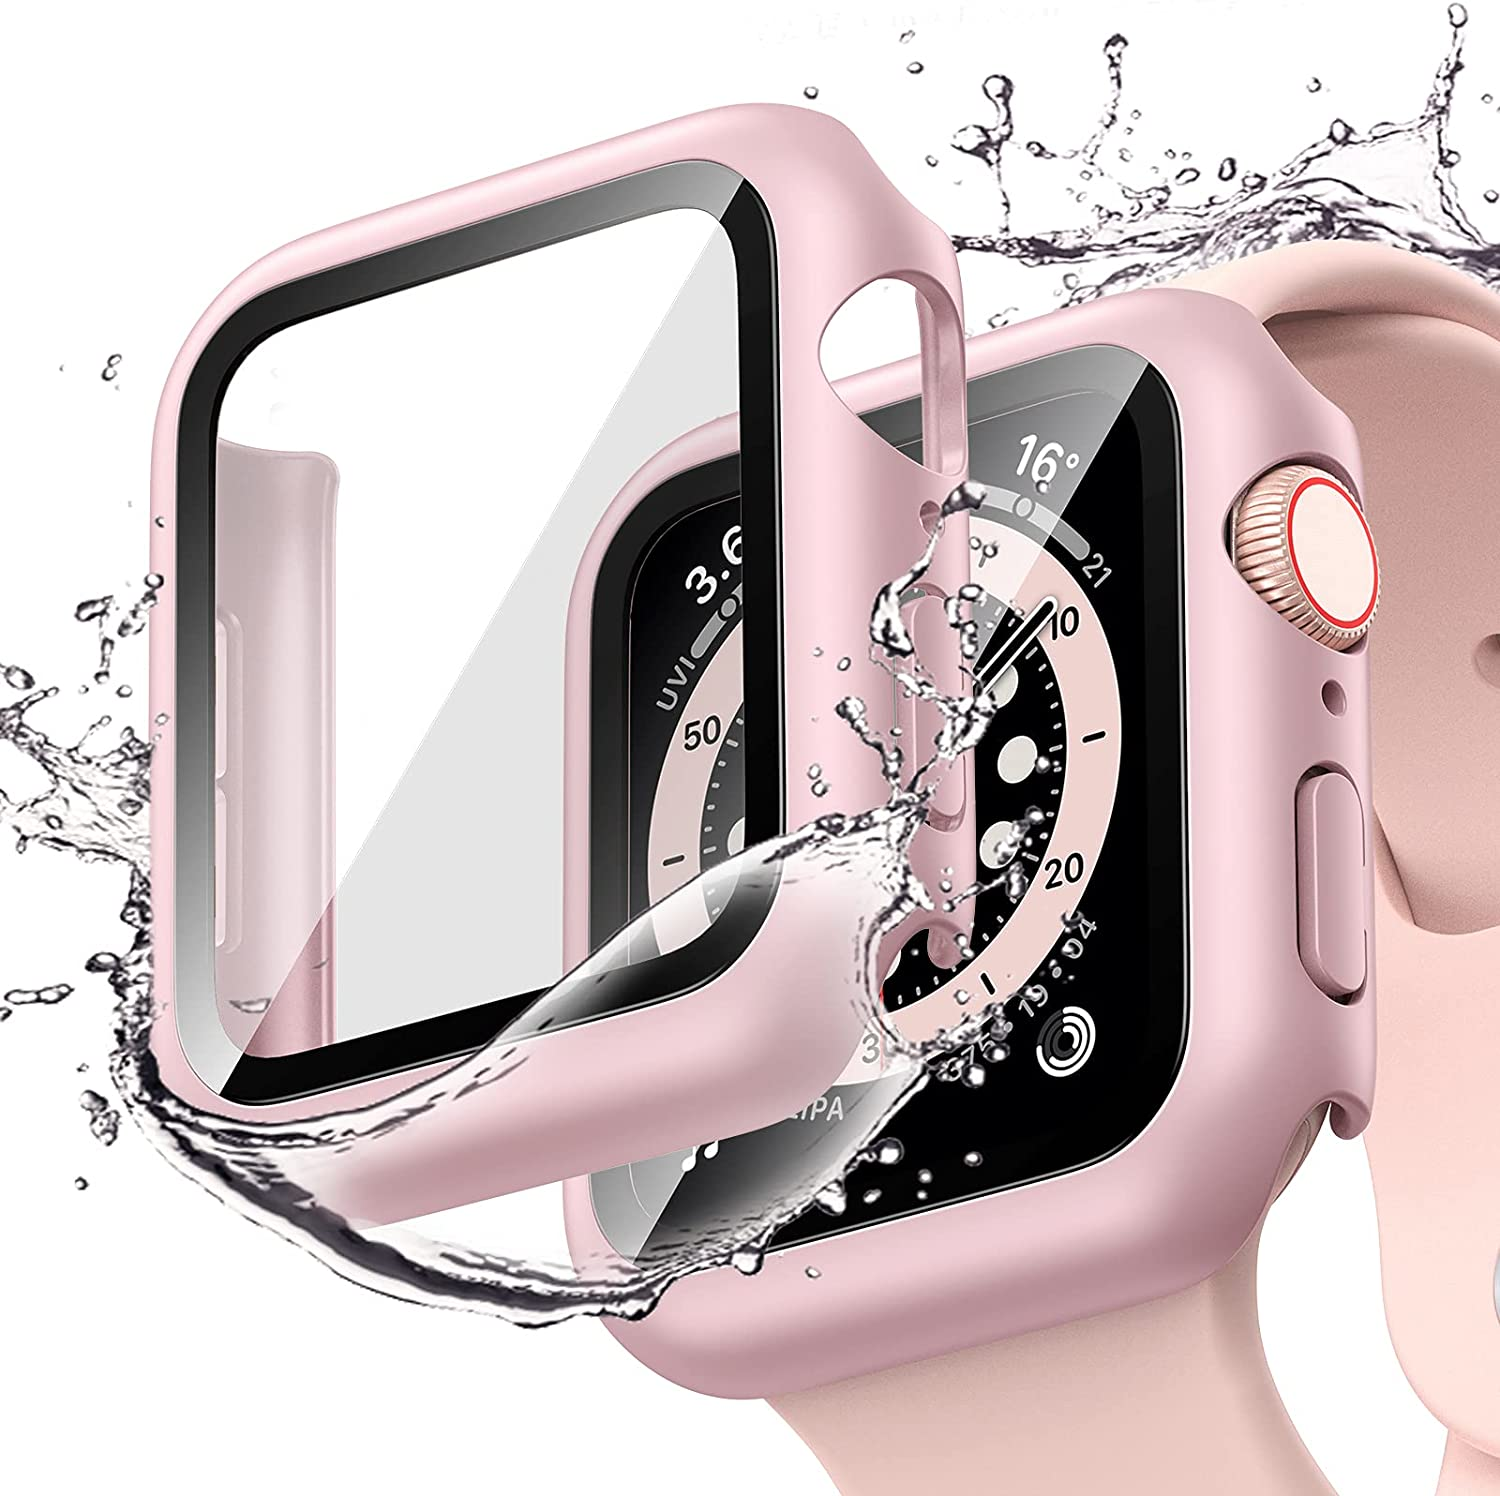 [2 Pack] Goton Waterproof Case Compatible for Apple Watch SE Series 6 /5 /4 40mm Case with Screen Protector, PC Matte Hard HD Tempered Glass Full Face Cover Protective Bumper Watch Case Accessories for iwatch women men (Pink+Pink, 40mm)